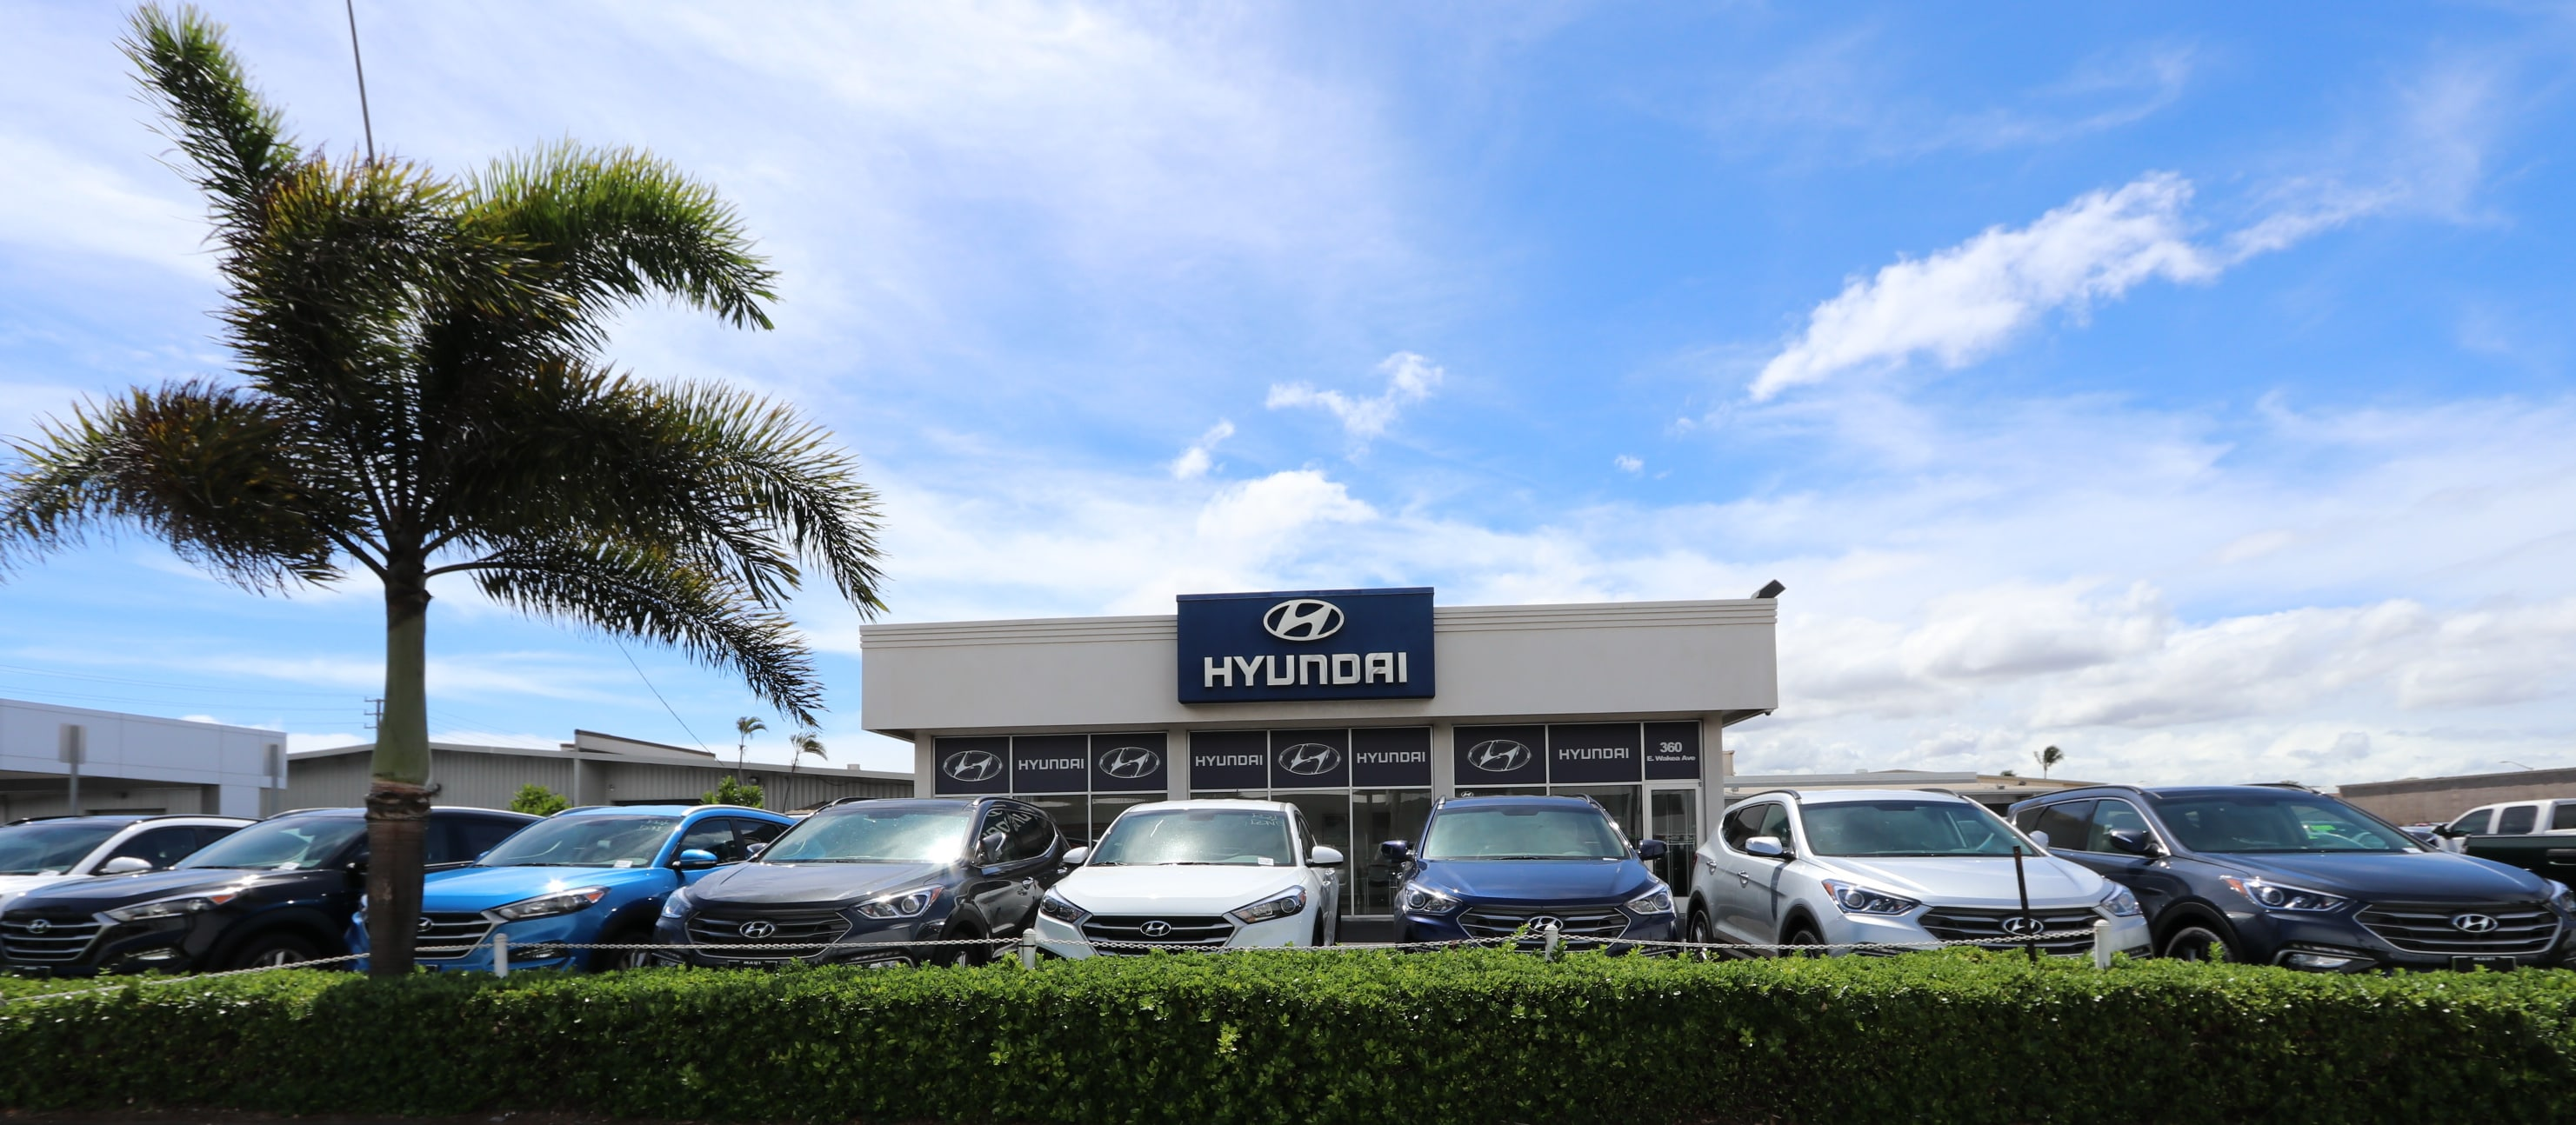 milton on dealership hyundai dealerships june used canada carousel incentives new